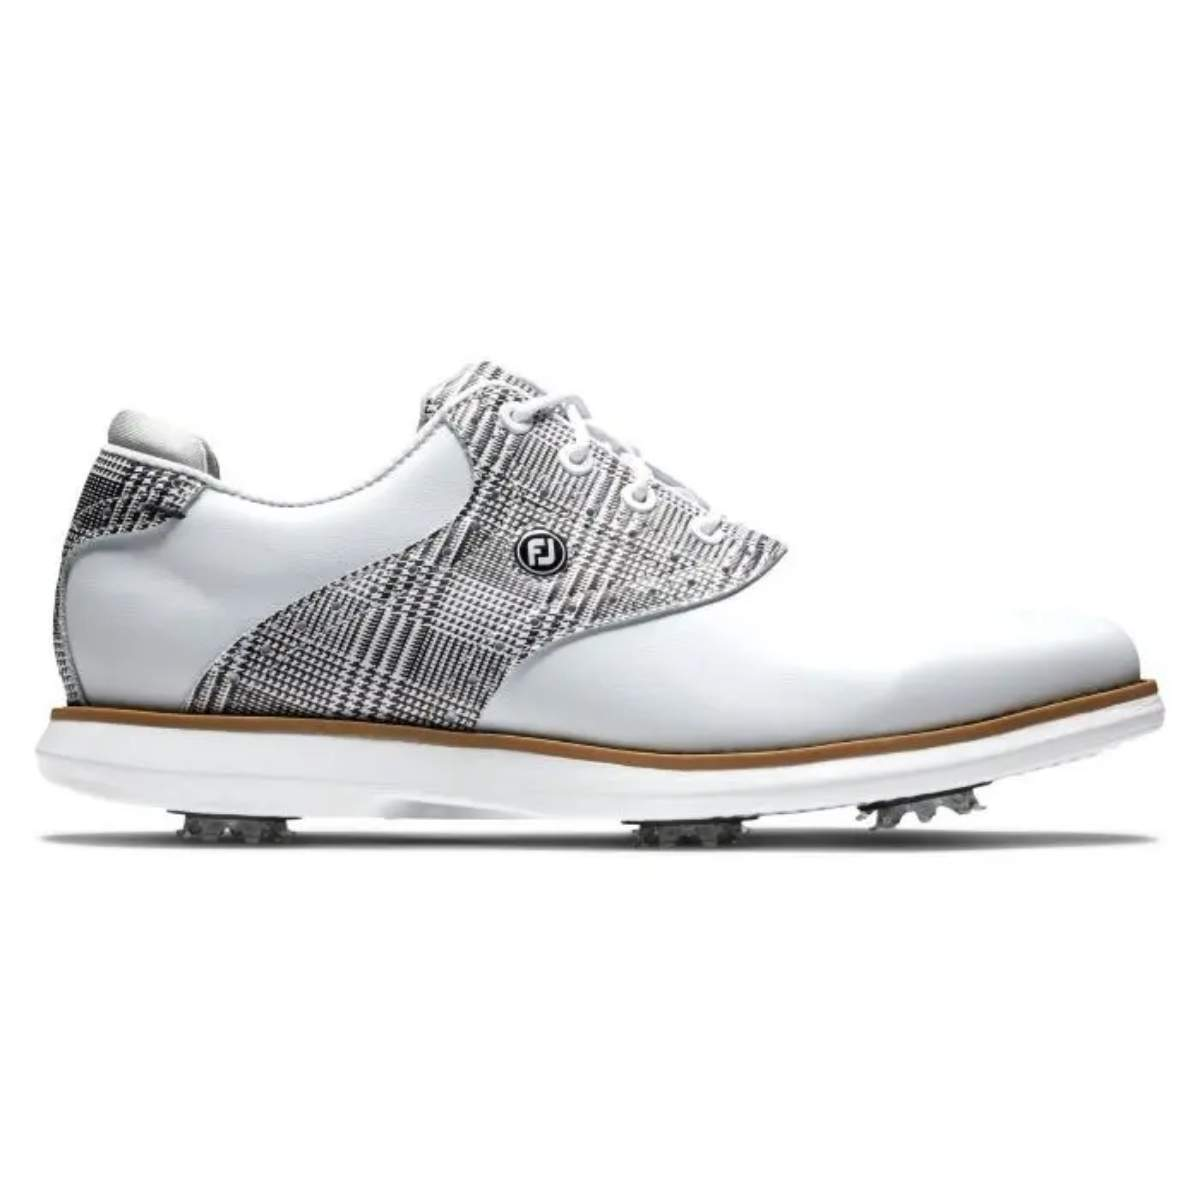 FootJoy Women's Traditions Golf Shoe - White/Black 97904